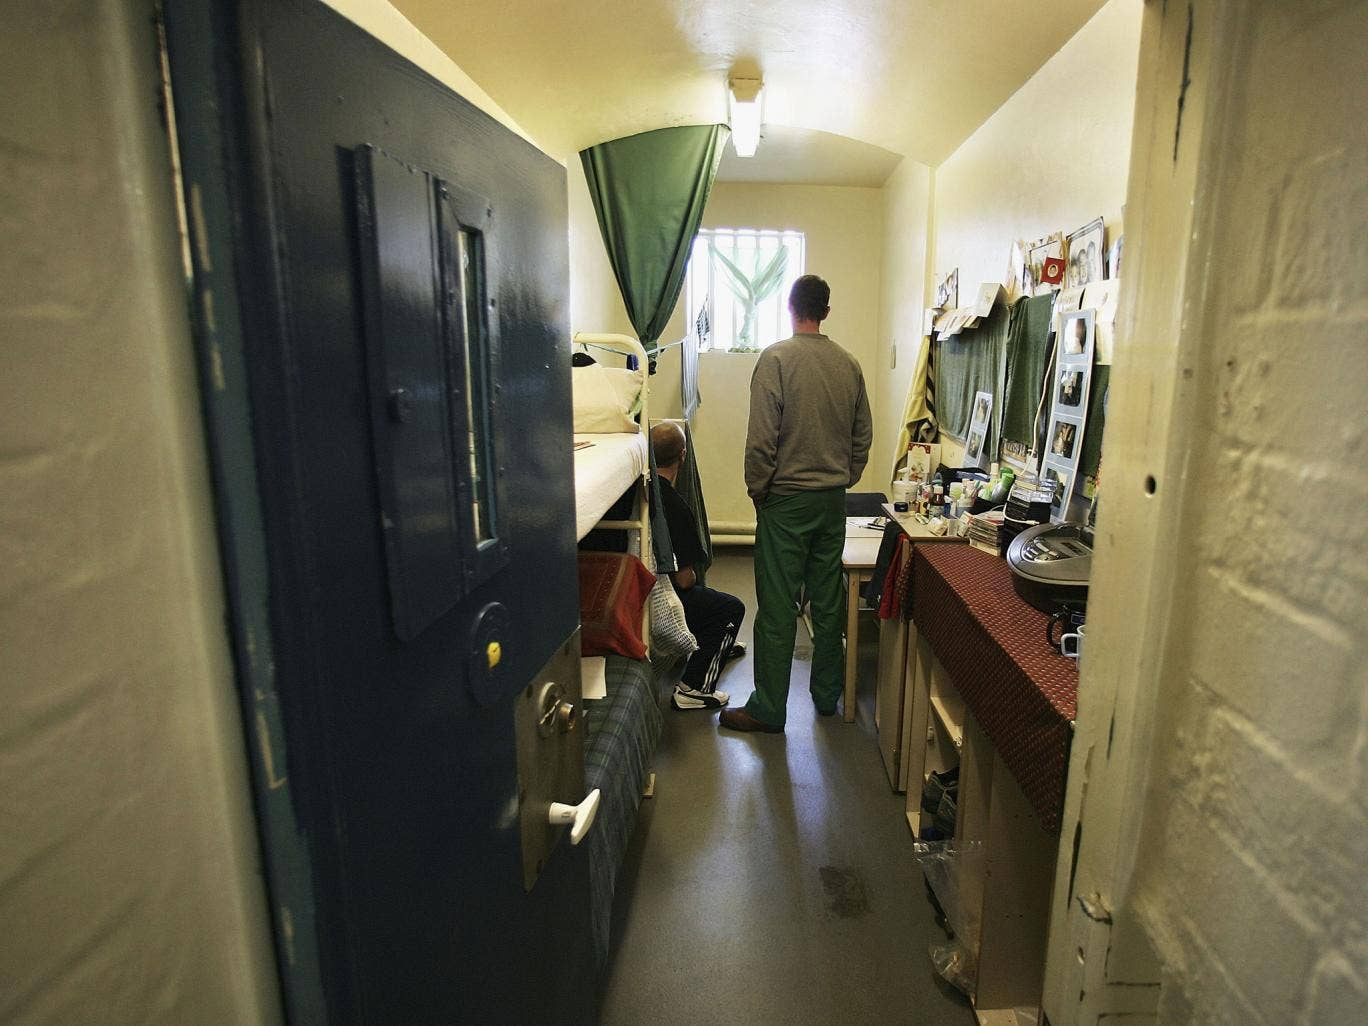 Prisoners look towards a window in a cell in A Wing of Norwich Prison on August 25, 2005 in Norwich, England. A Chief Inspector of Prisons report on Norwich Prison says healthcare accommodation was among the worst seen, as prisoners suffered from unscreen